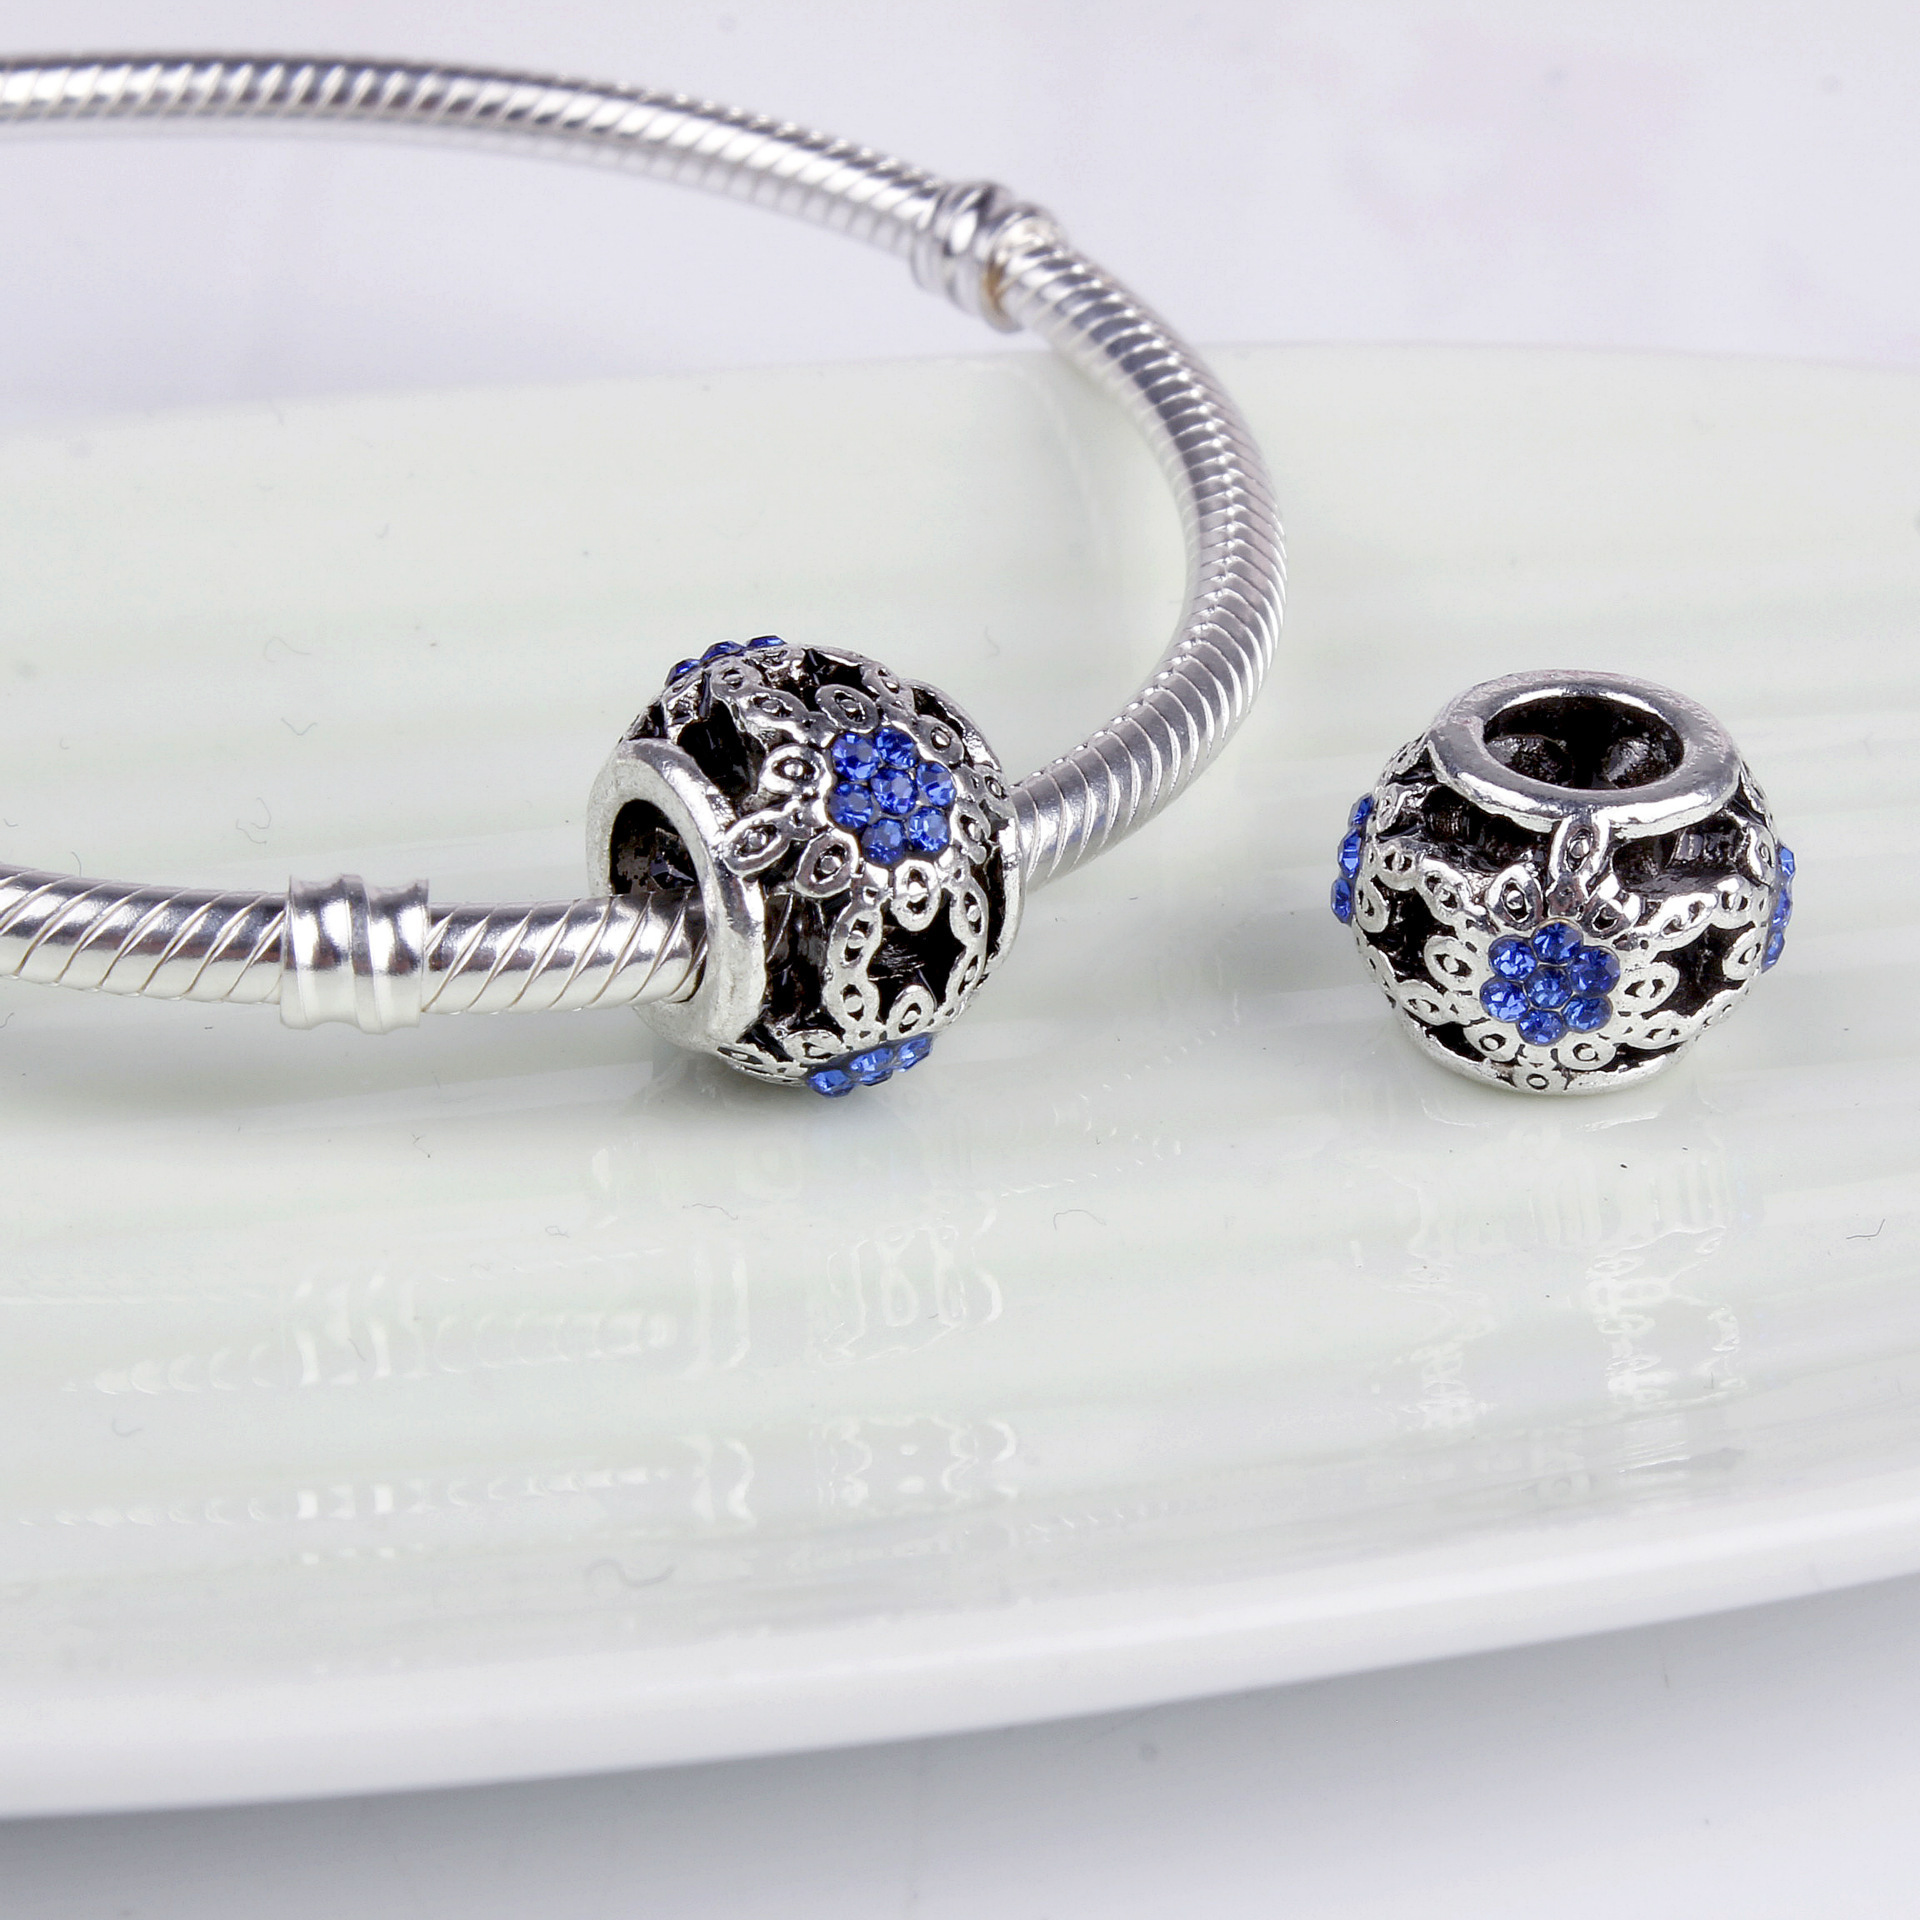 New treasure blue crystal bead bracelet accessories big hole beads for 3MM snake chain jewelry Diy beads QB12